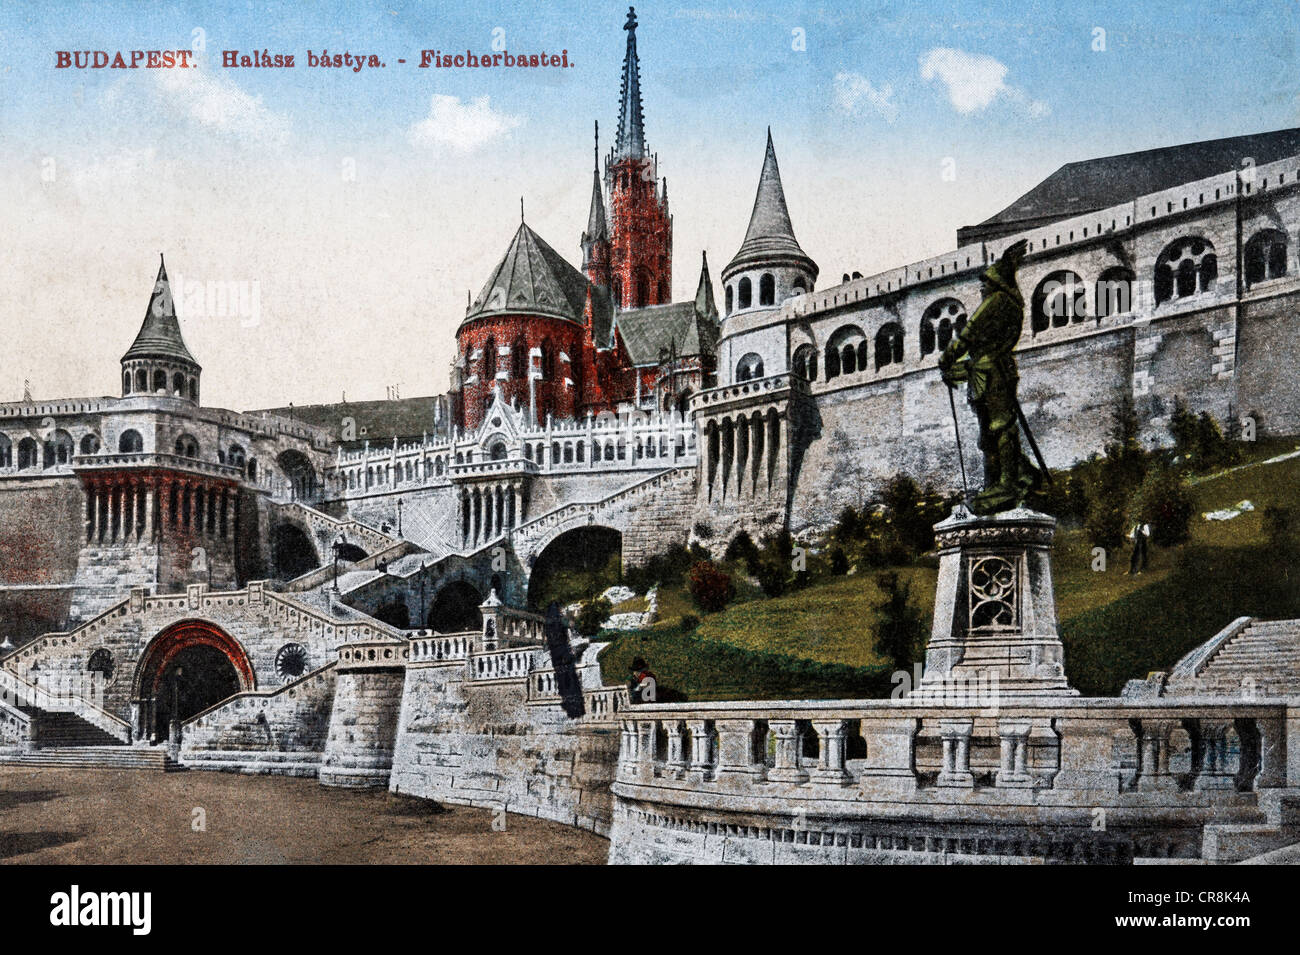 Halászbástya or Fisherman's Bastion in Budapest, Hungary, historic postcard, around 1900 - Stock Image